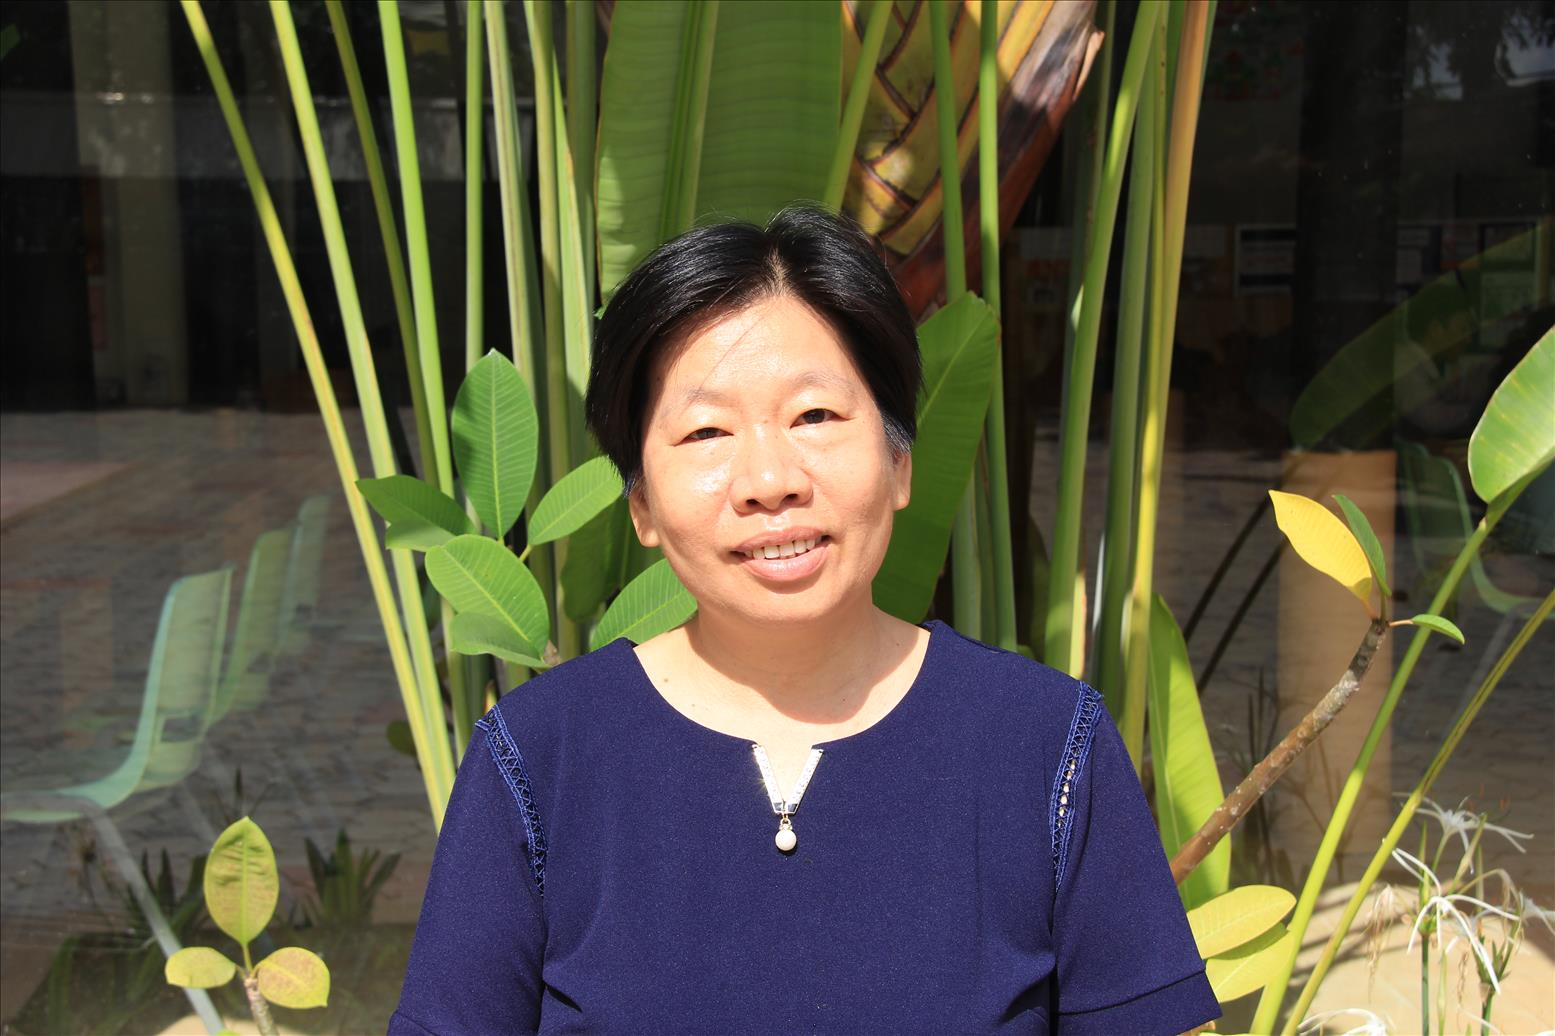 Chen Pai Ling – Lead Chinese Teacher